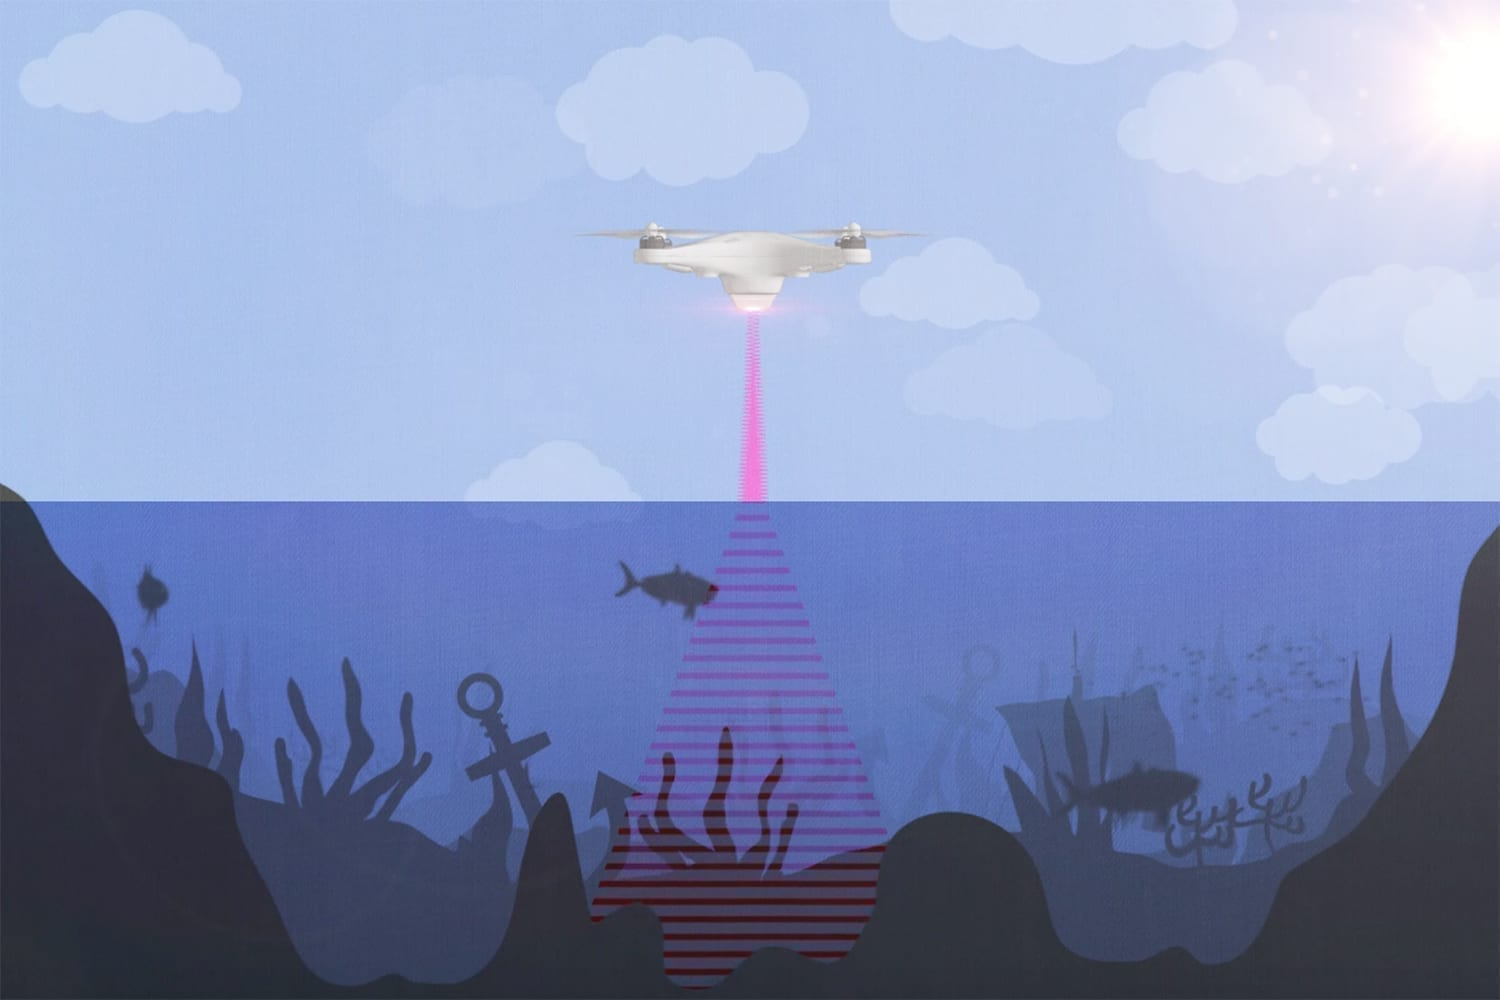 An artist rendition of the photoacoustic airborne sonar system operating from a drone to sense and image underwater objects. (Image credit: Kindea Labs)